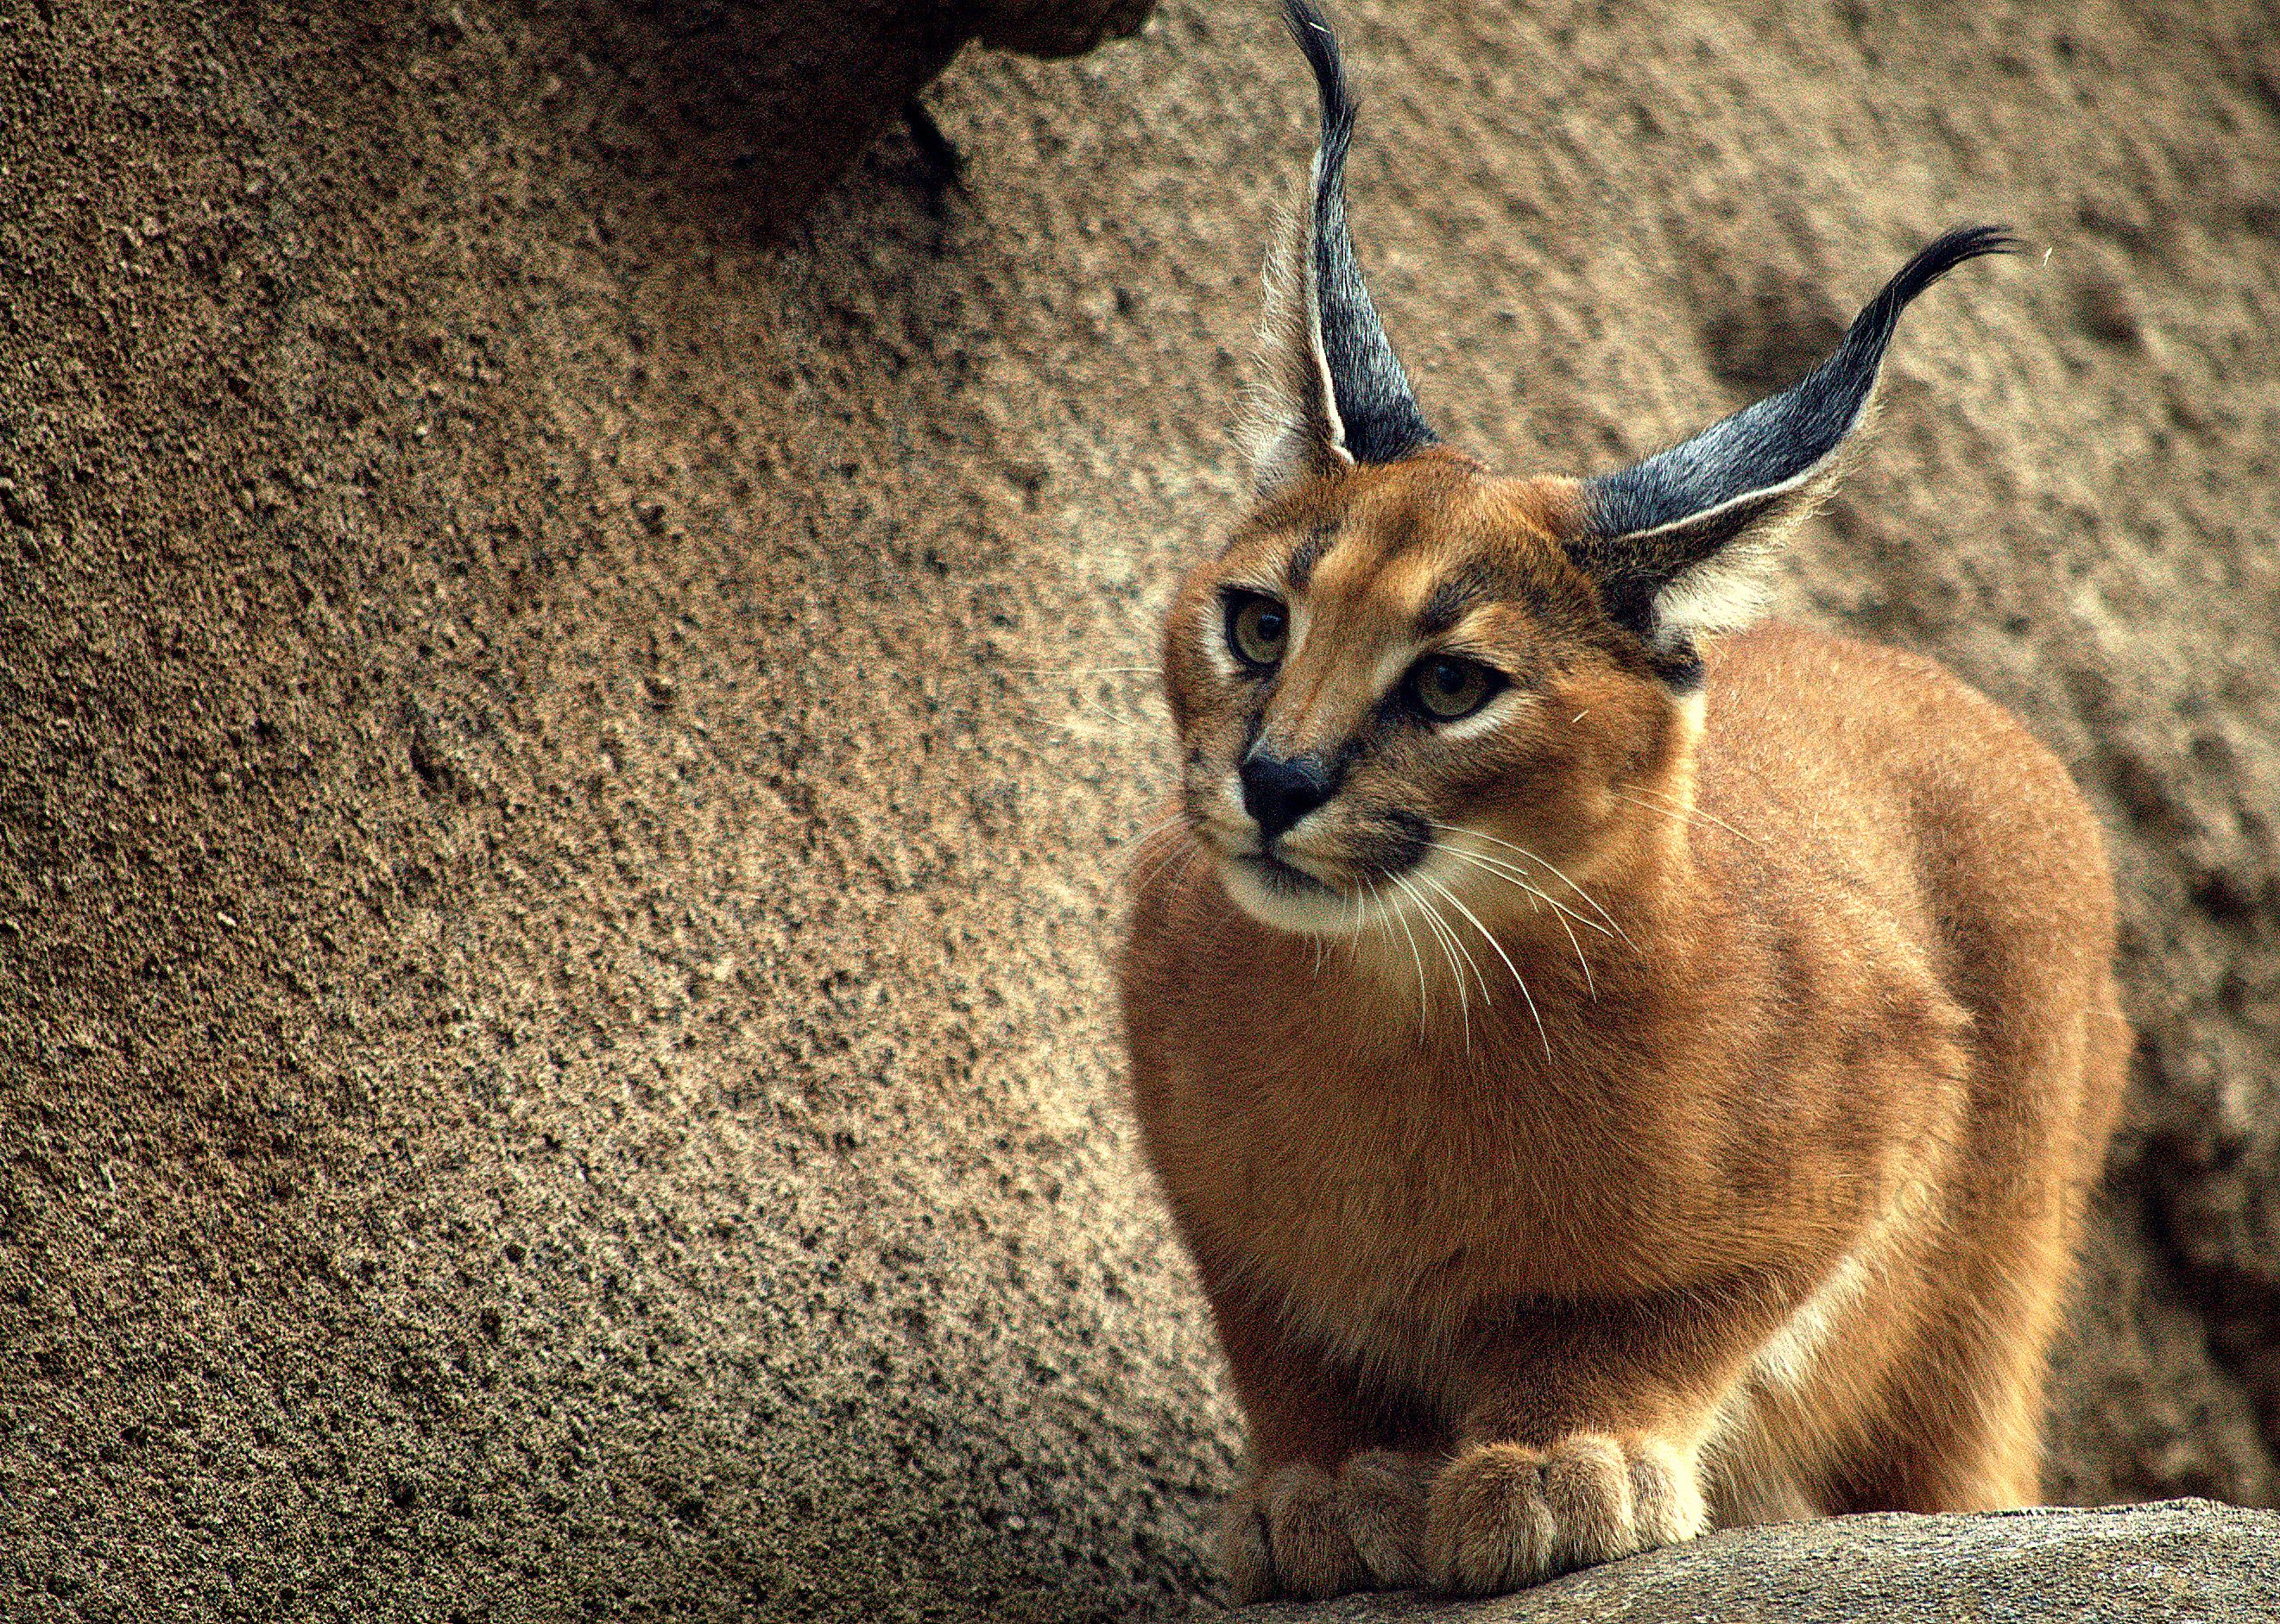 Caracal. The caracal makes the usual cat sounds, but also